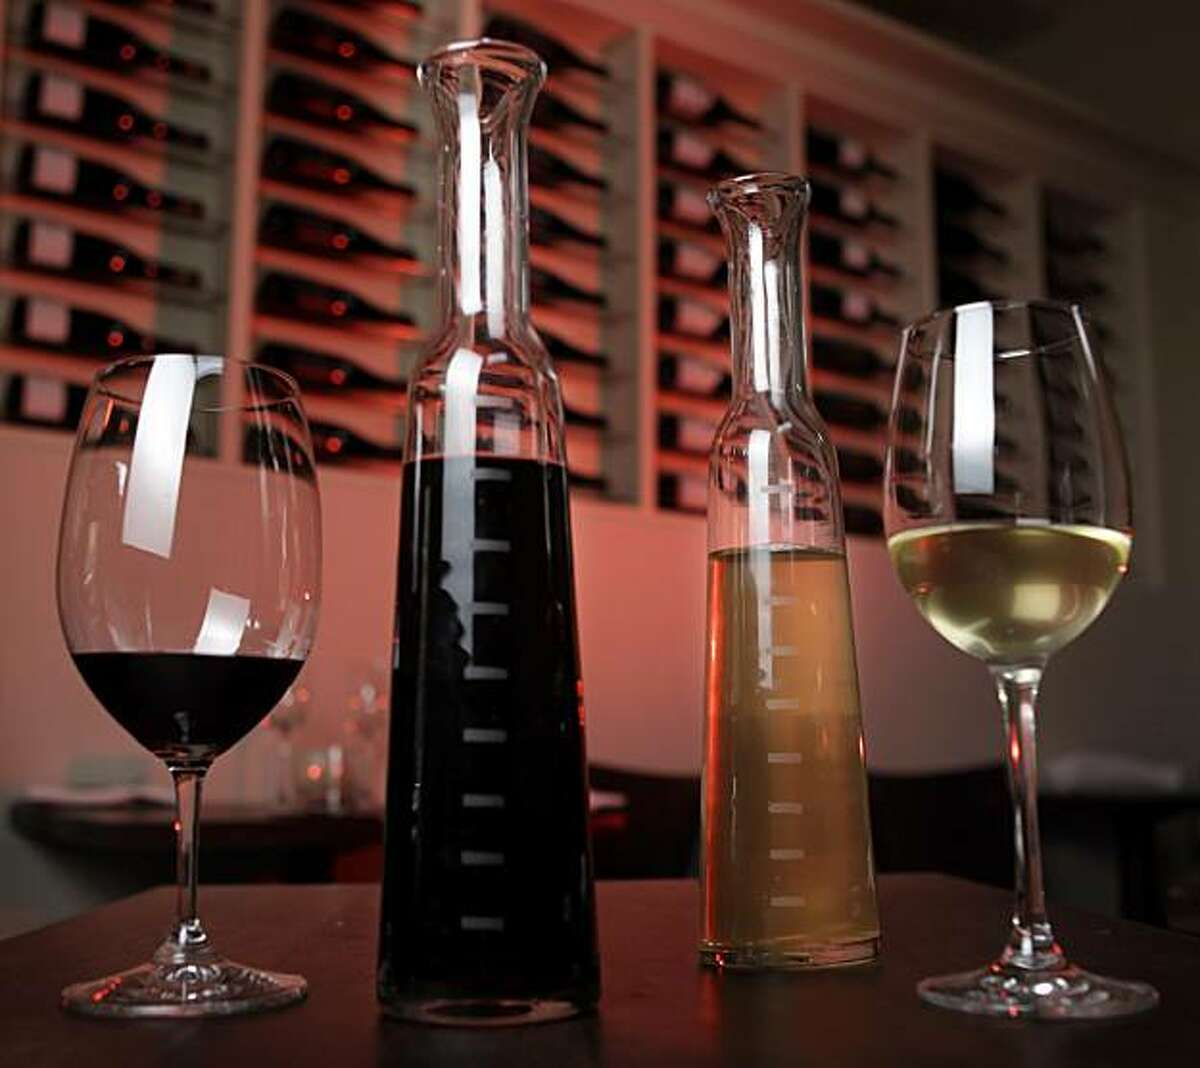 A bottle of red and white blend wine are what is served as the house wines on tap at Frances restaurant, March 28, 2010, in San Francisco, Calif. The bottles are marked every two ounces and are charged one dollar an ounce.